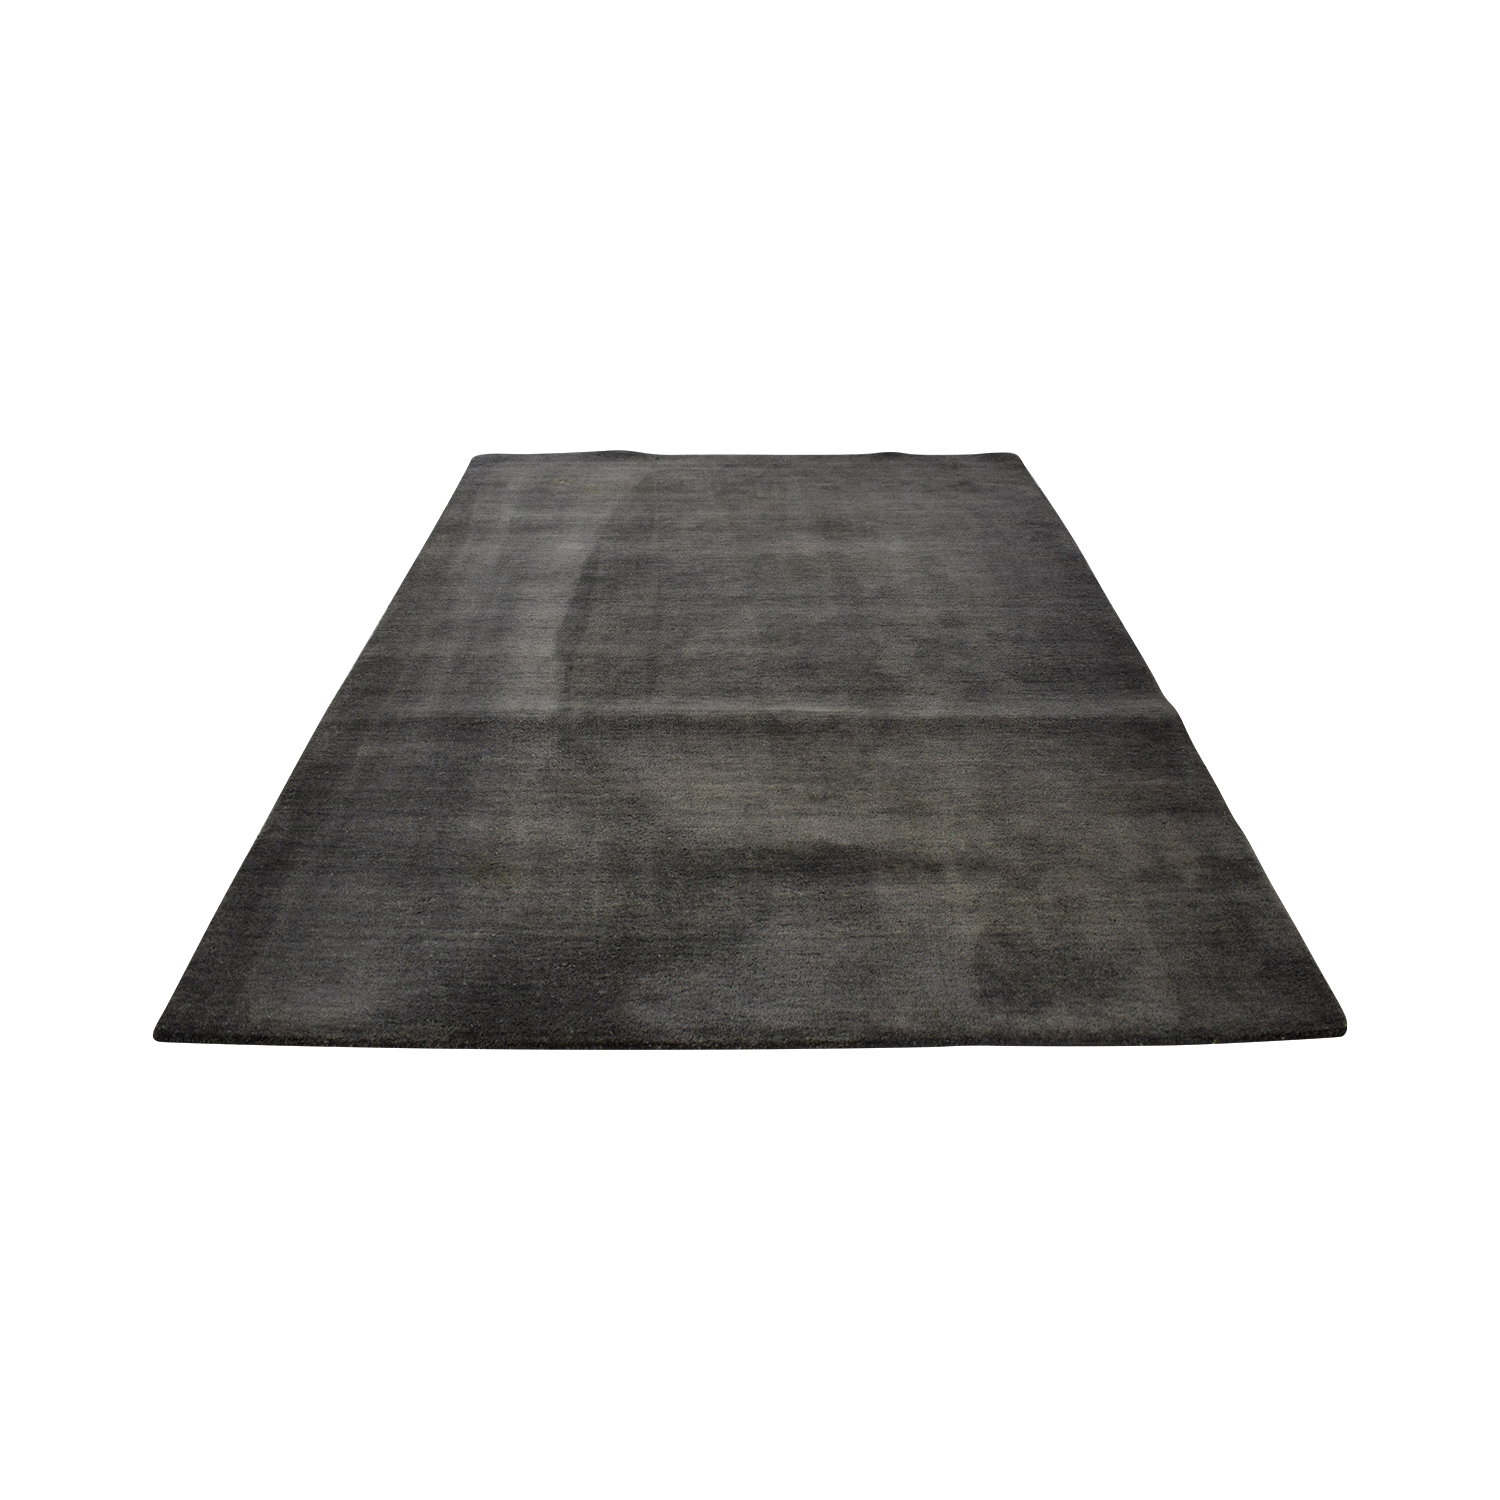 Crate & Barrel Crate & Barrel Grey Rug used